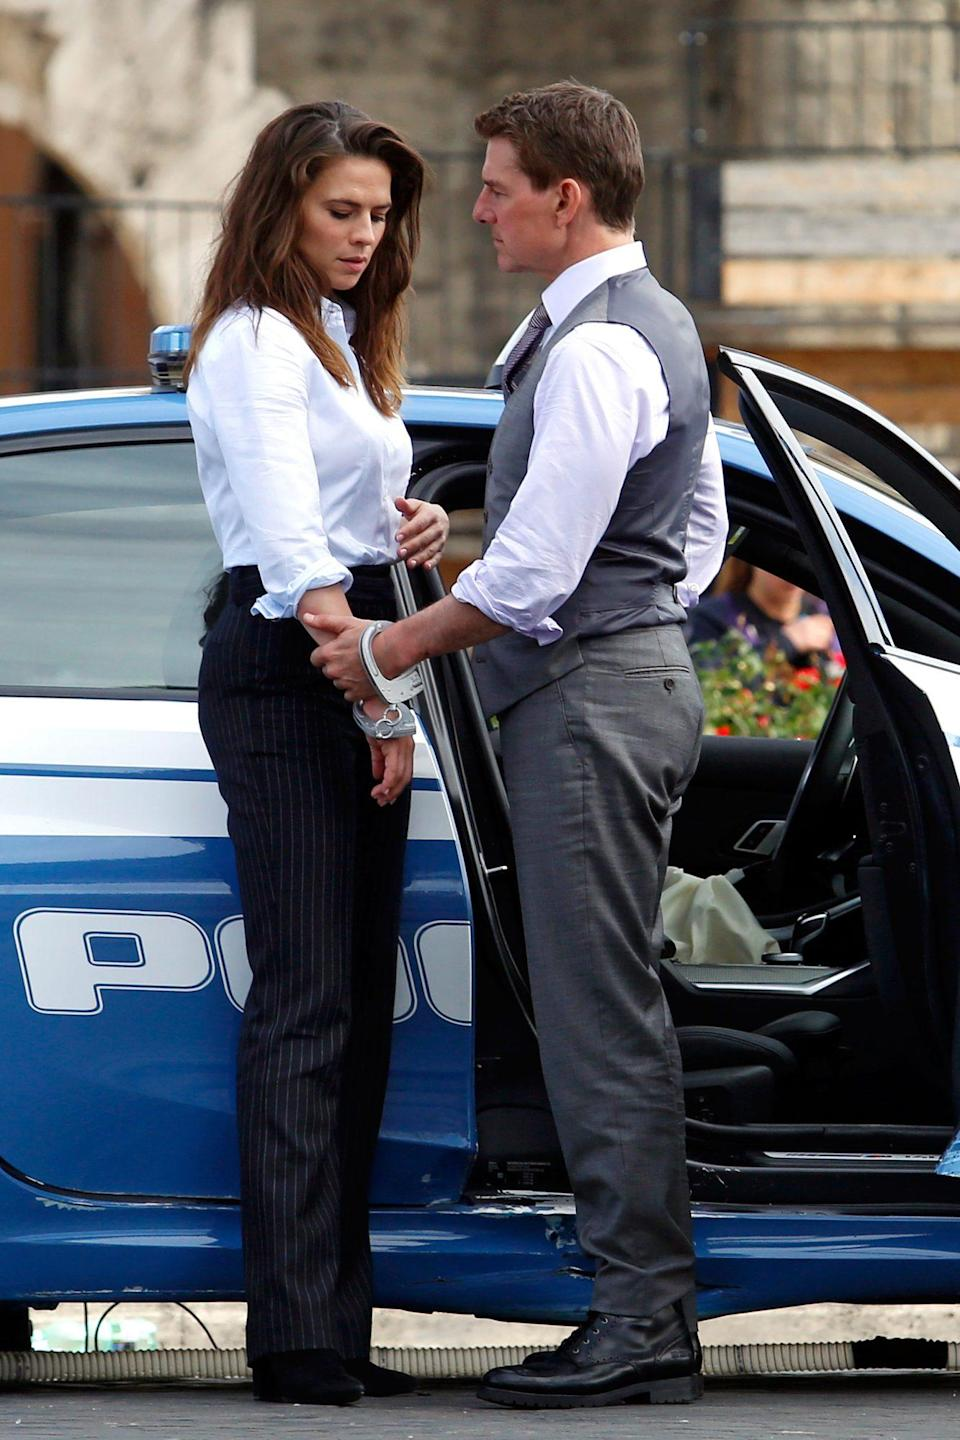 <p>Tom Cruise and Hayley Atwell are seen handcuffed together while filming <em>Mission Impossible 7</em> at Imperial Fora in Rome, Italy on Tuesday.</p>